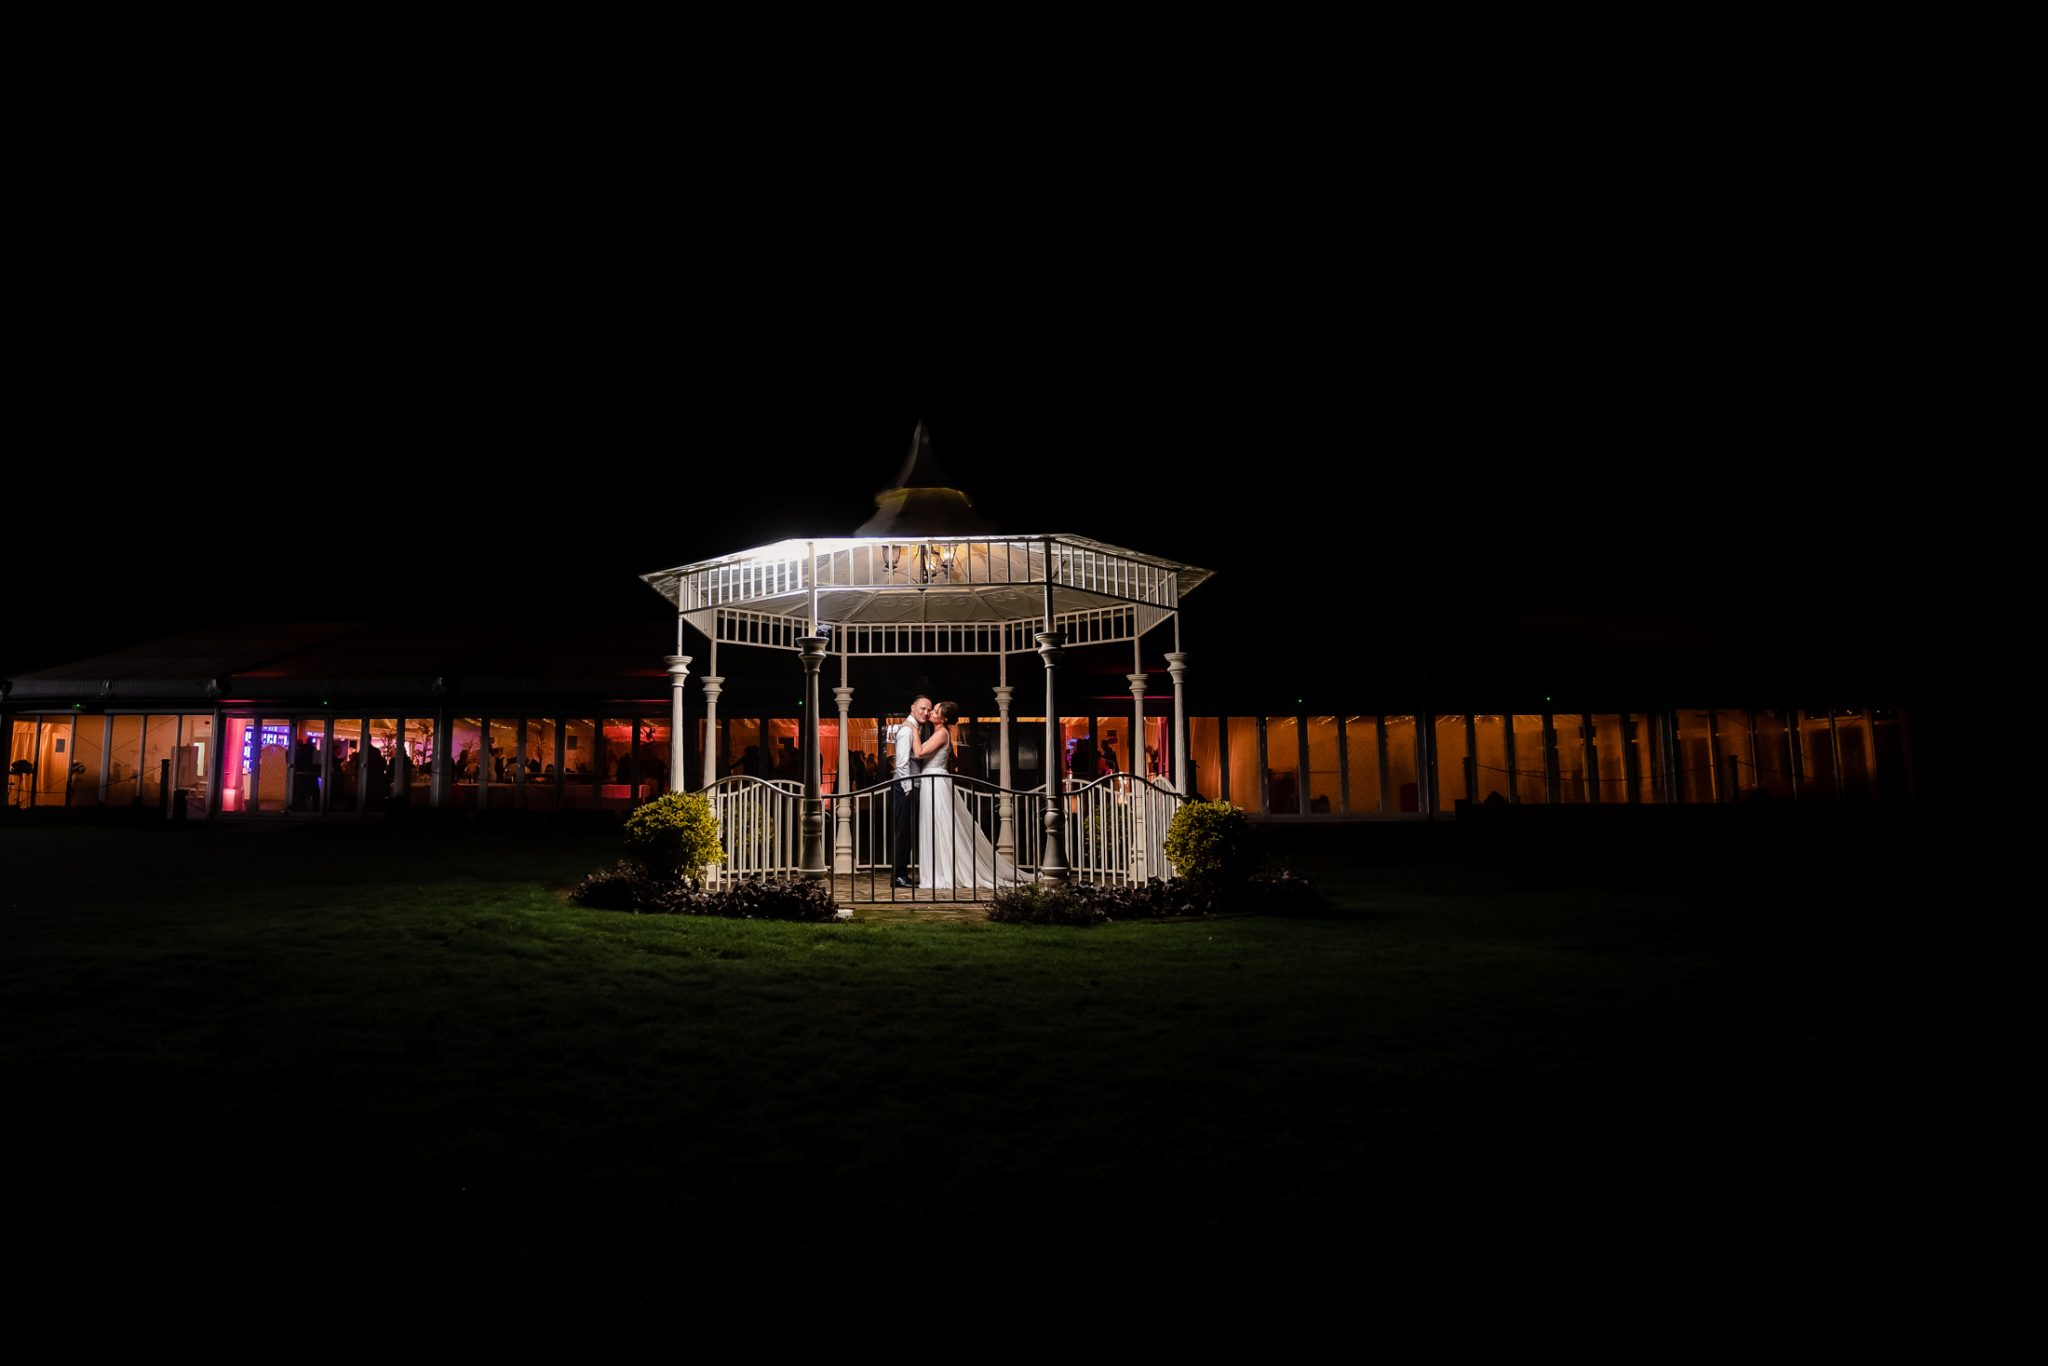 bride and groom under a pagoda at parklands quendon hall wedding venue - wedding photographer in Essex - lily and white